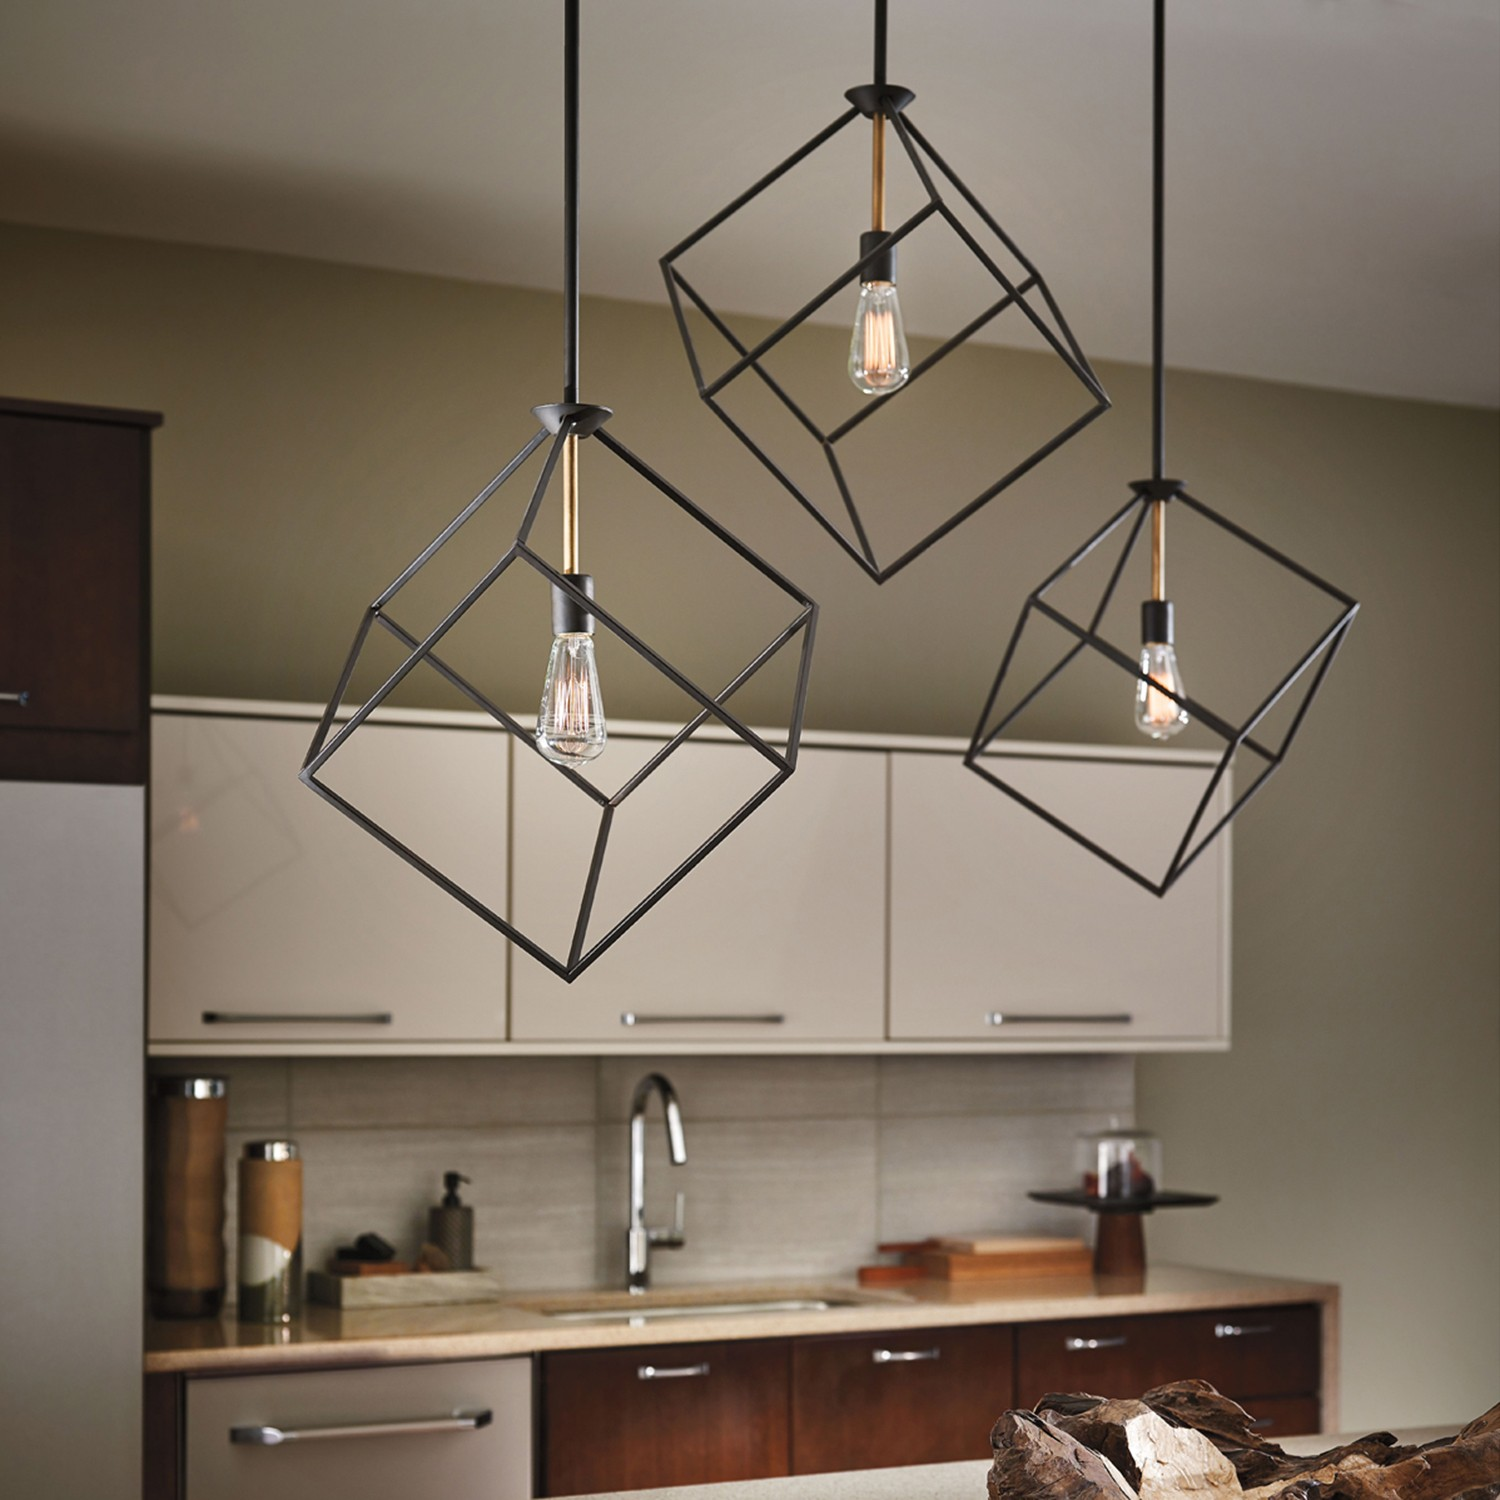 Introducing kichler modern lighting for Designer lighting